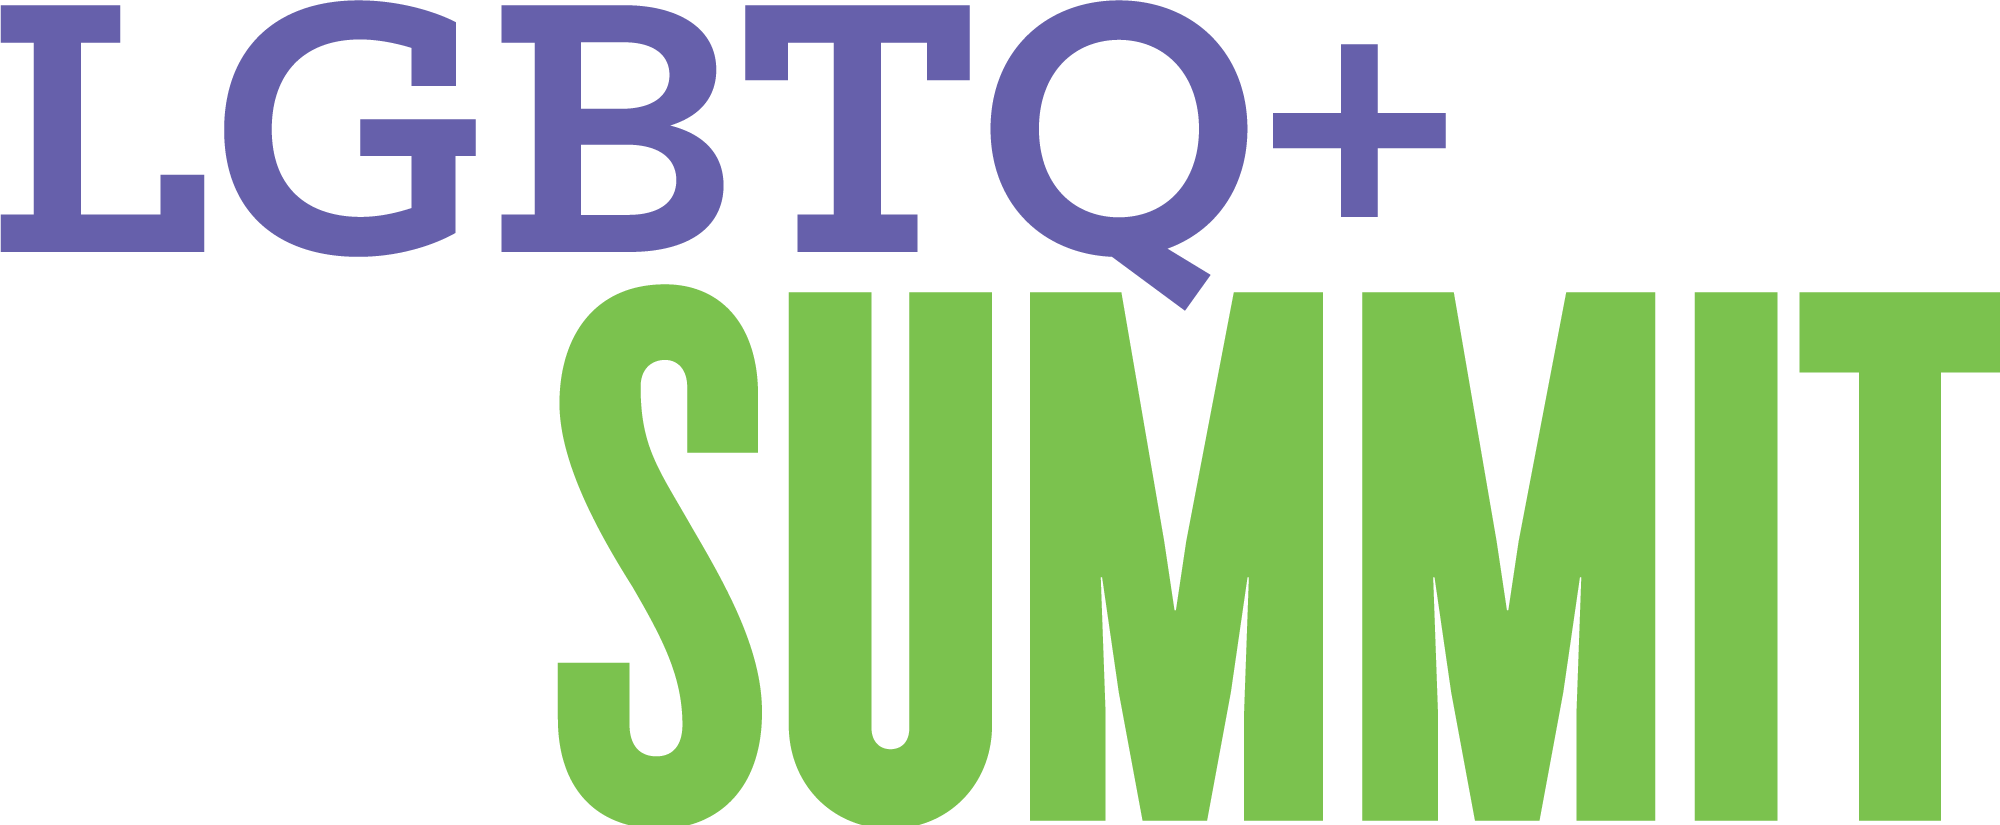 LGBTQ+ Summit